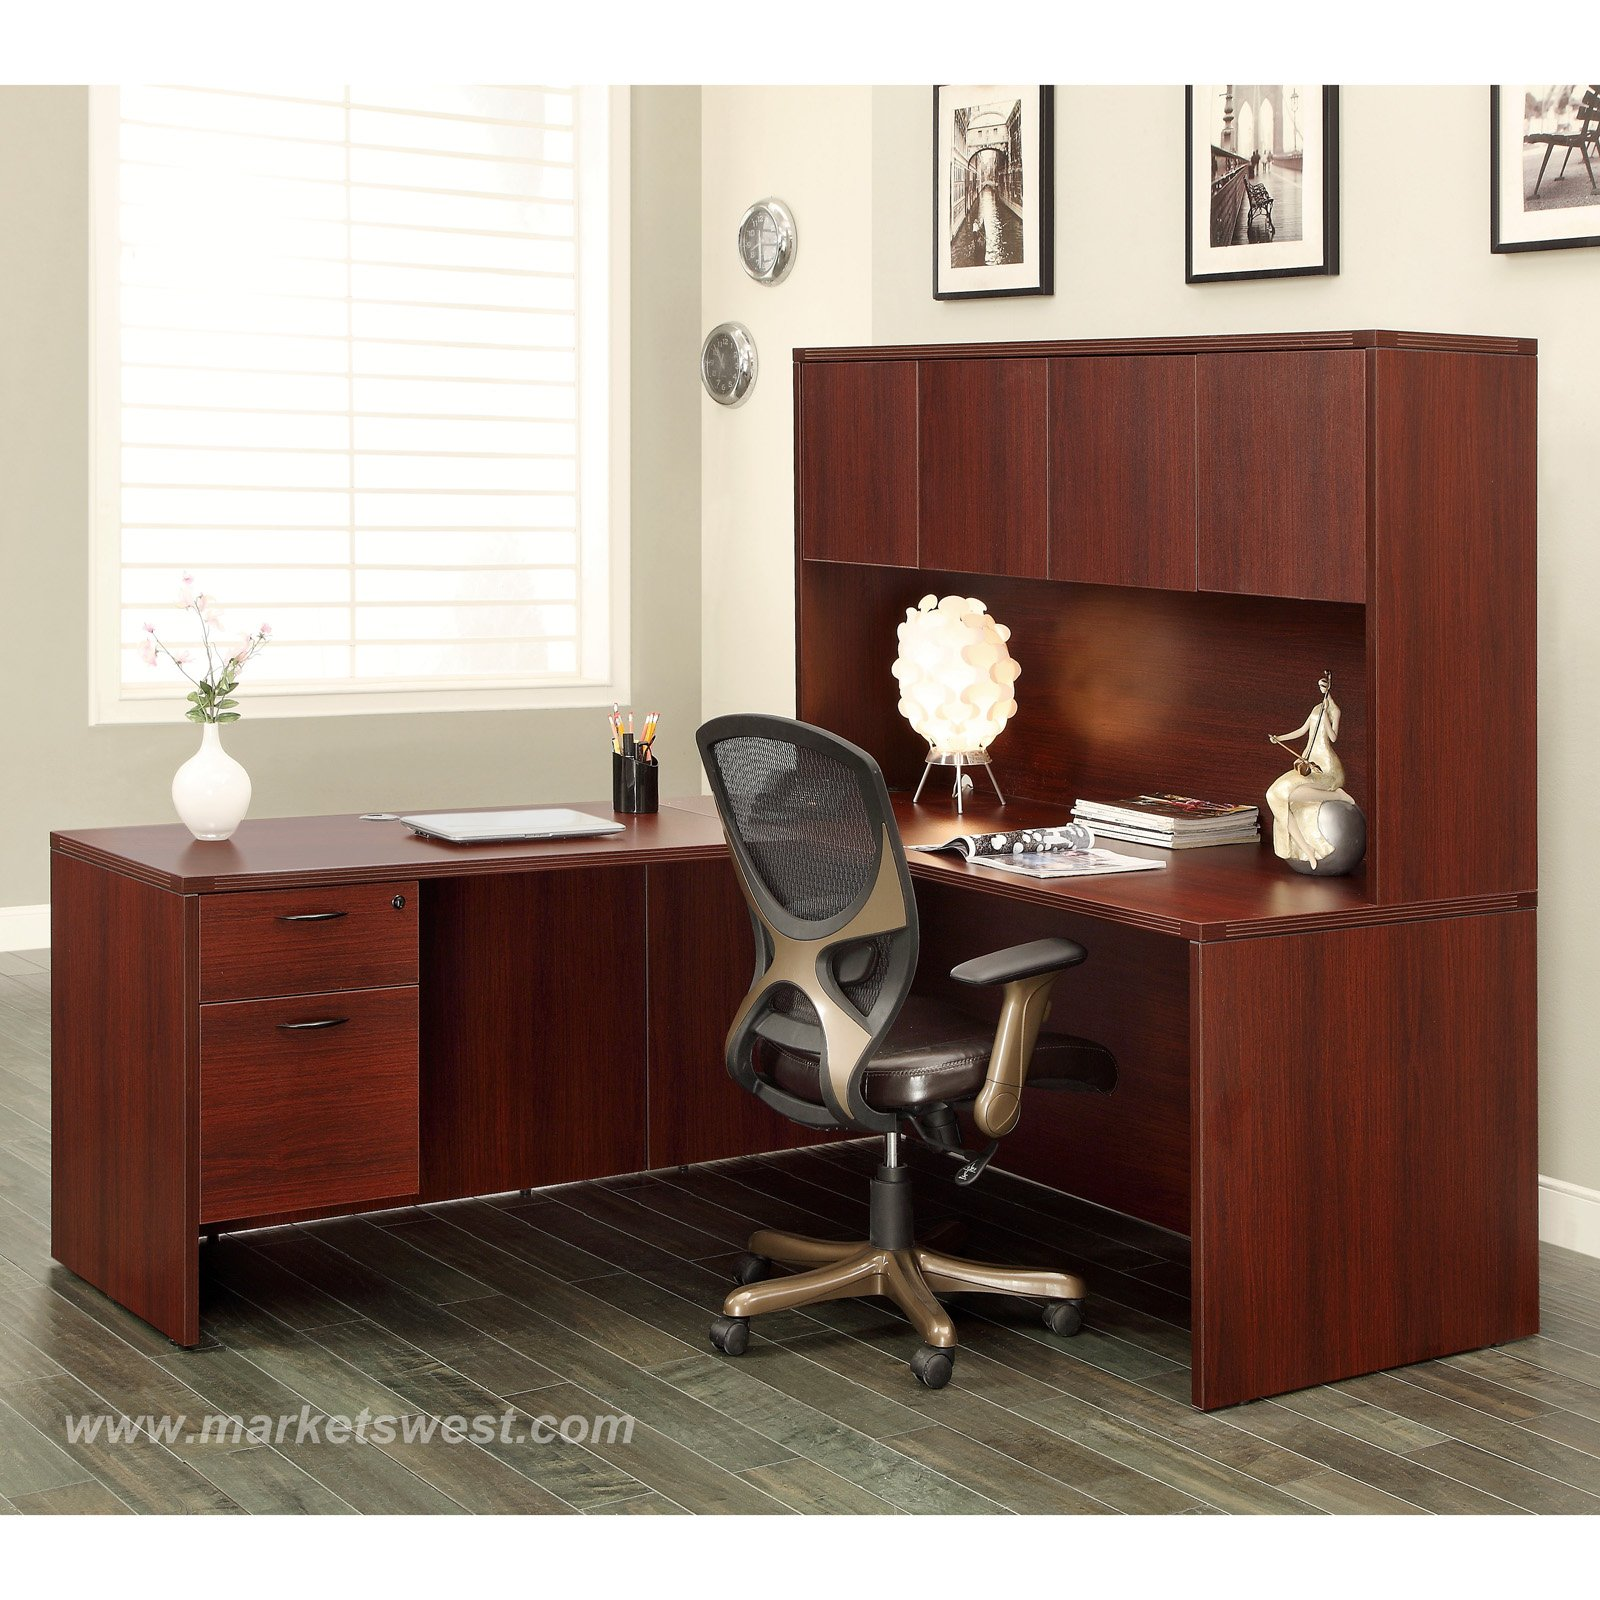 L Shape Desk With Hutch 66x78 Cherry Or Mahogany